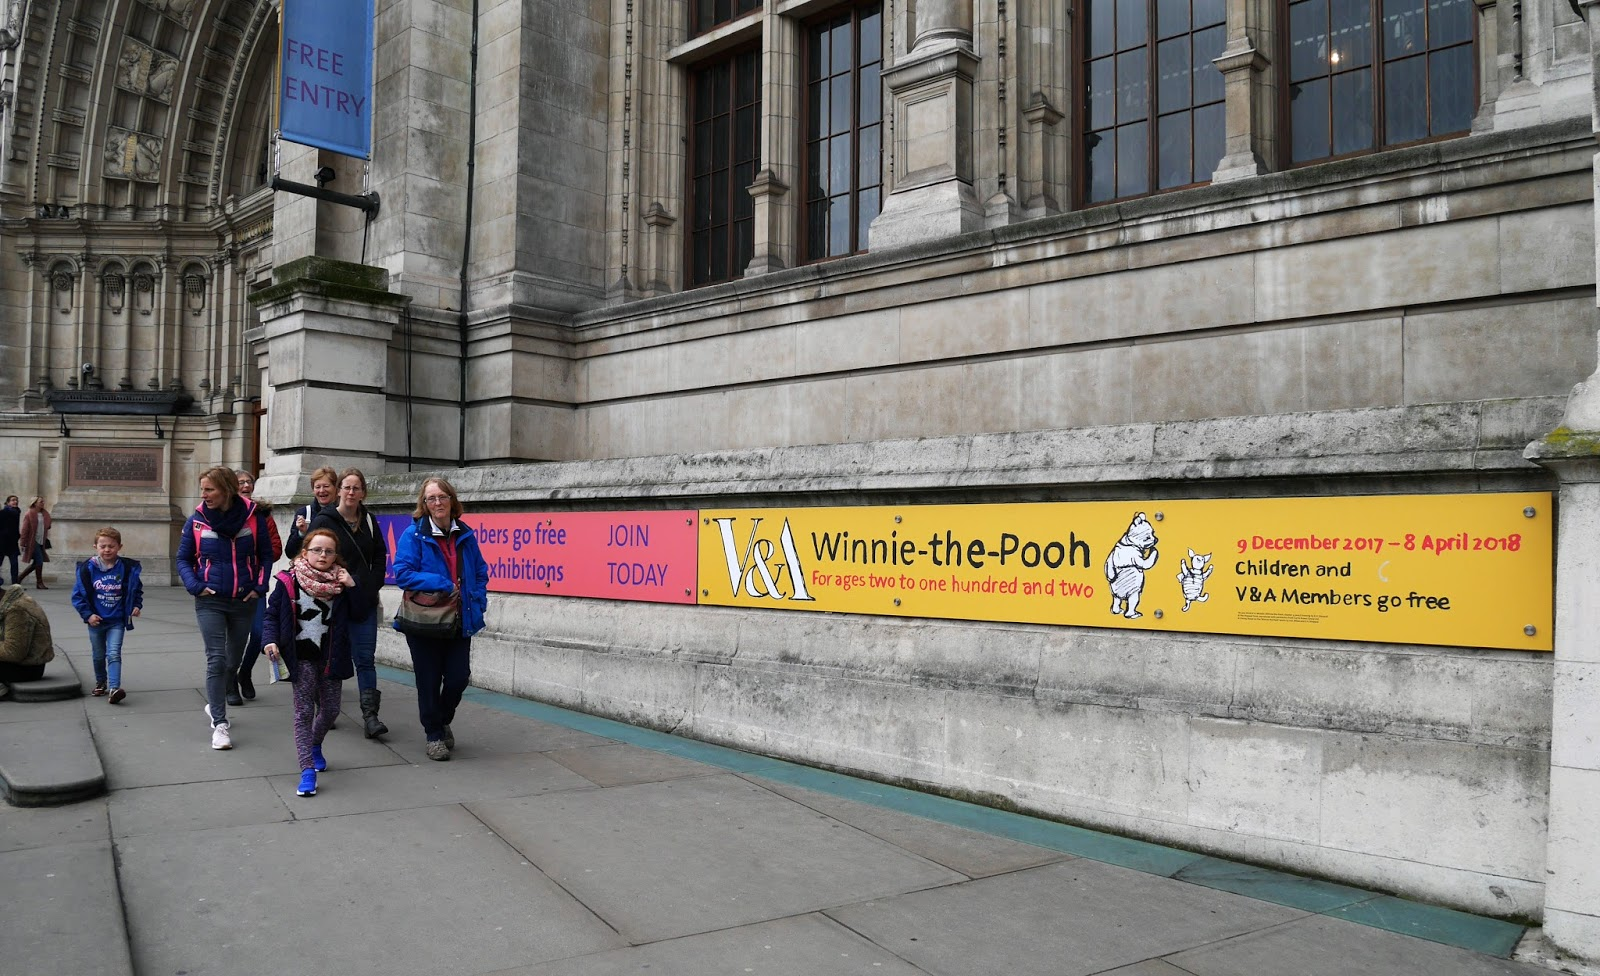 The Winnie the Pooh: Exploring a Classic exhibition sign outside the Victoria and Albert Museum